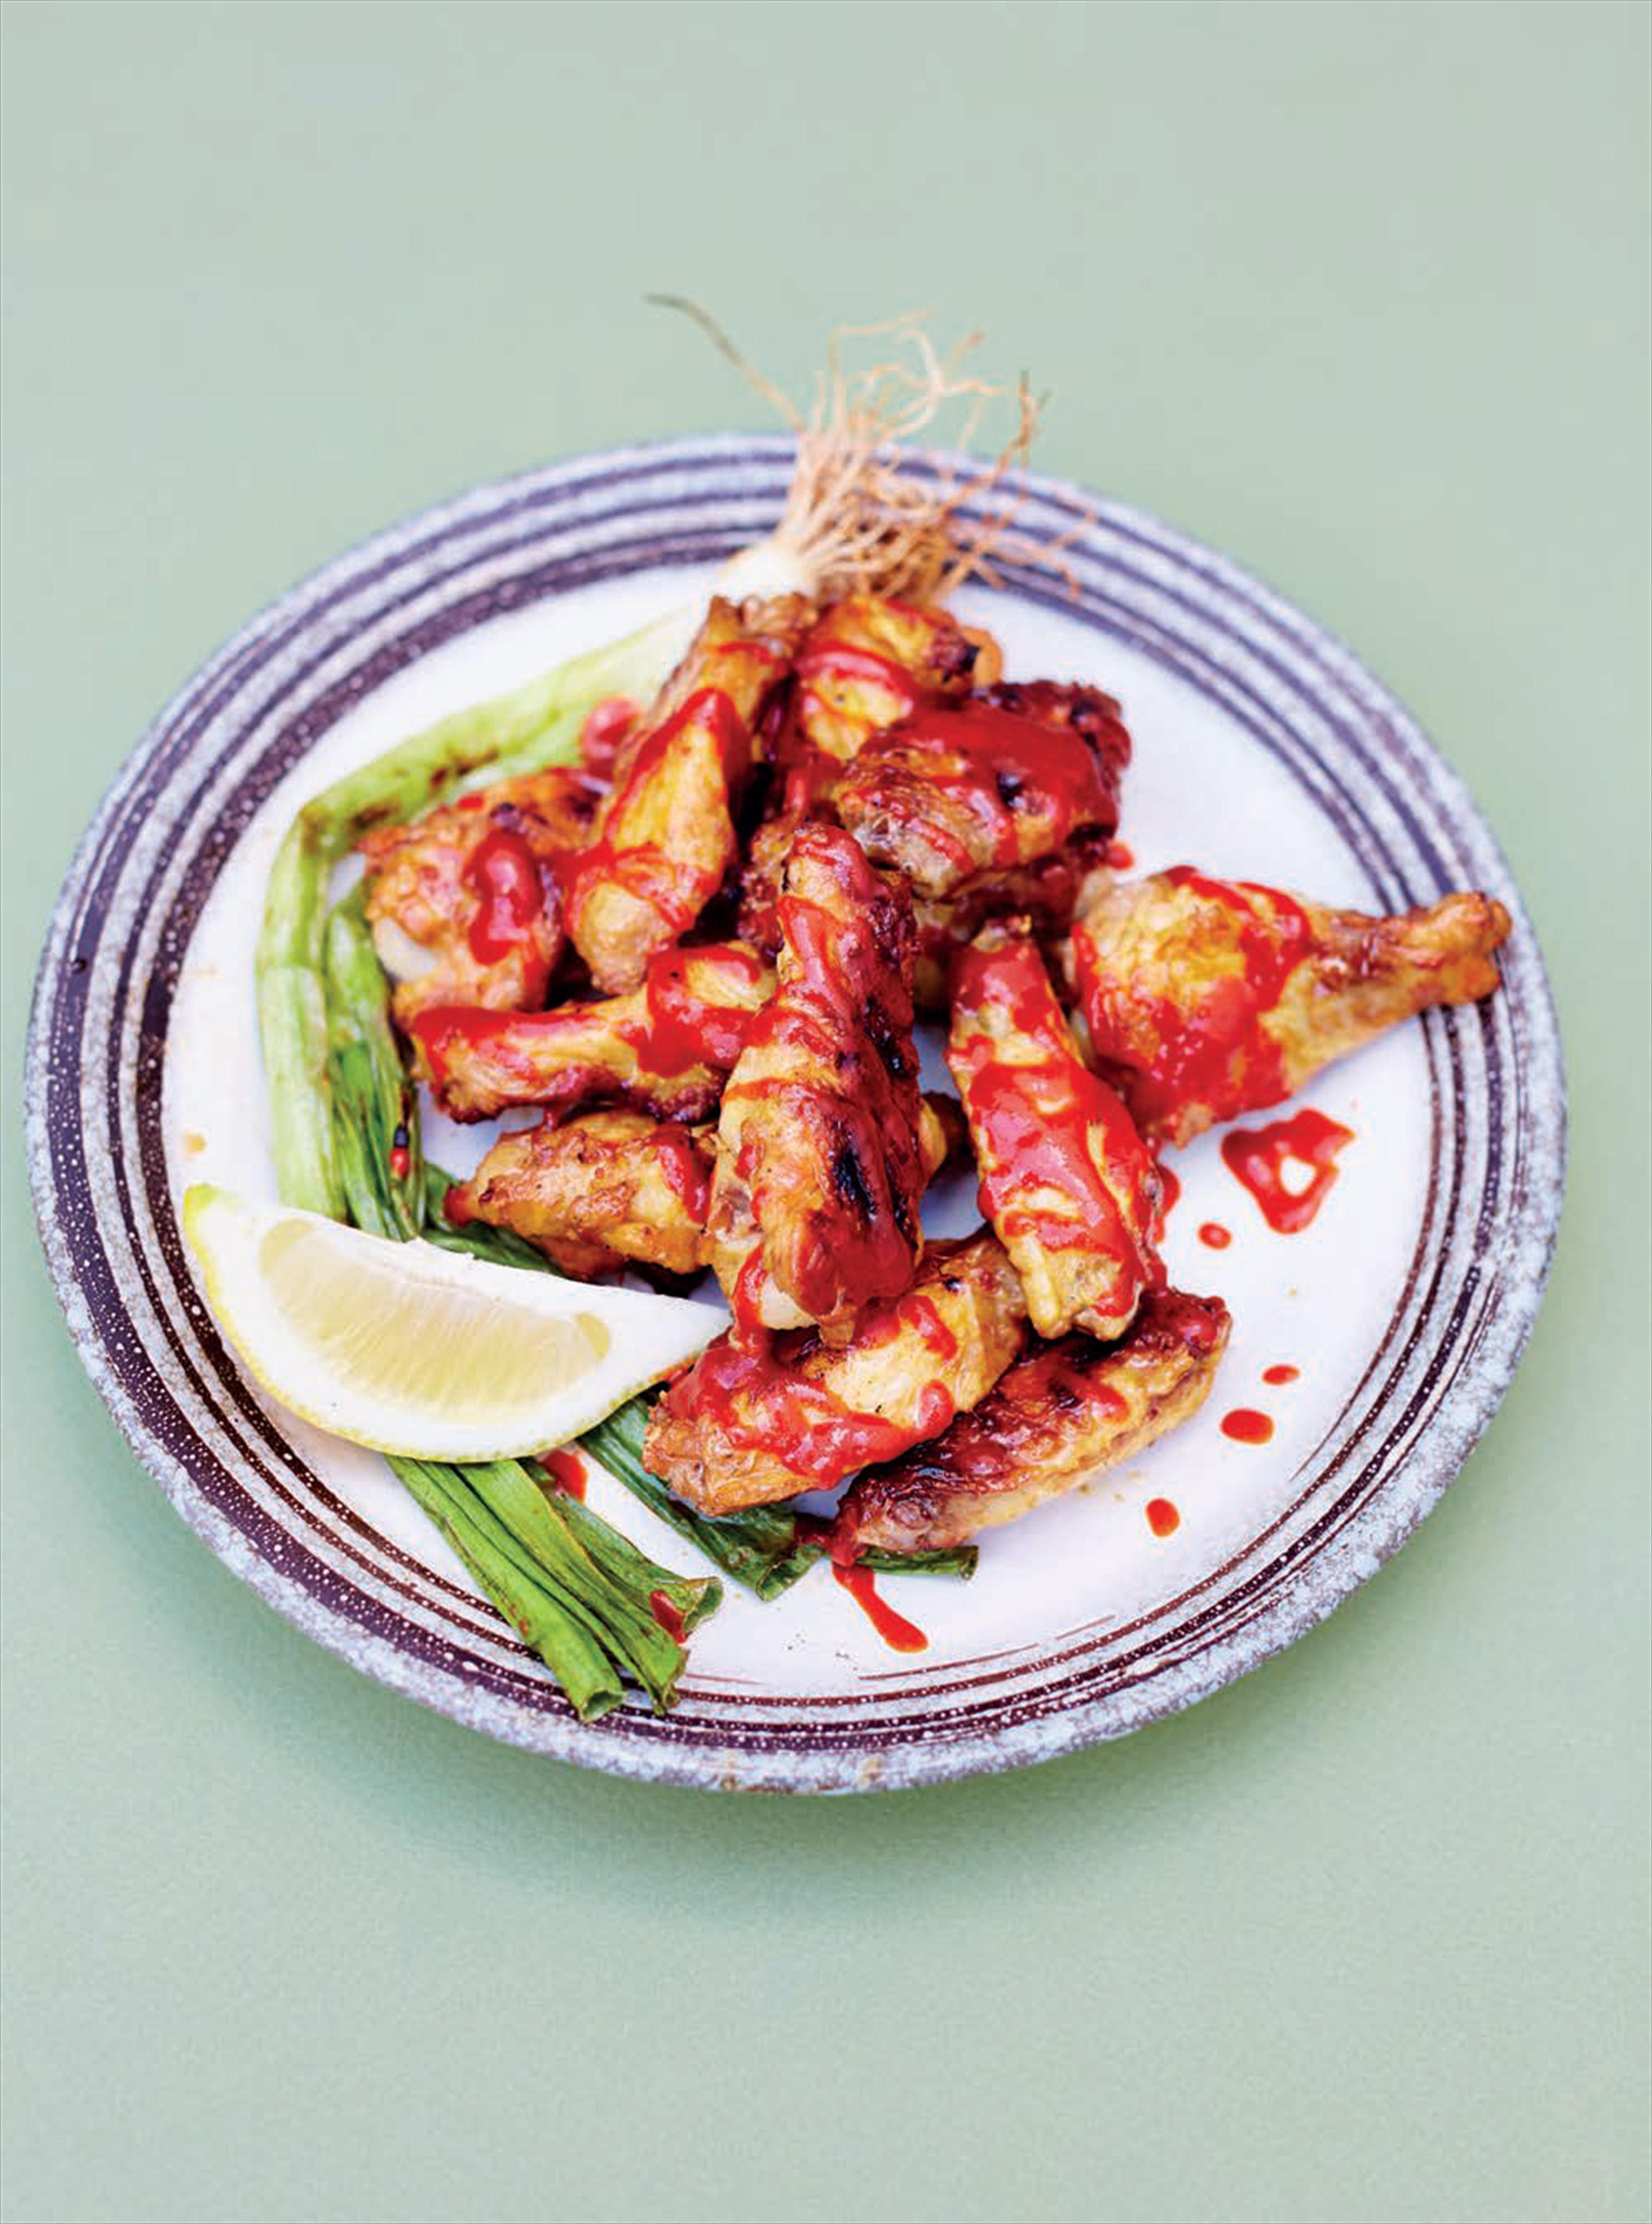 Miso grilled hot wings